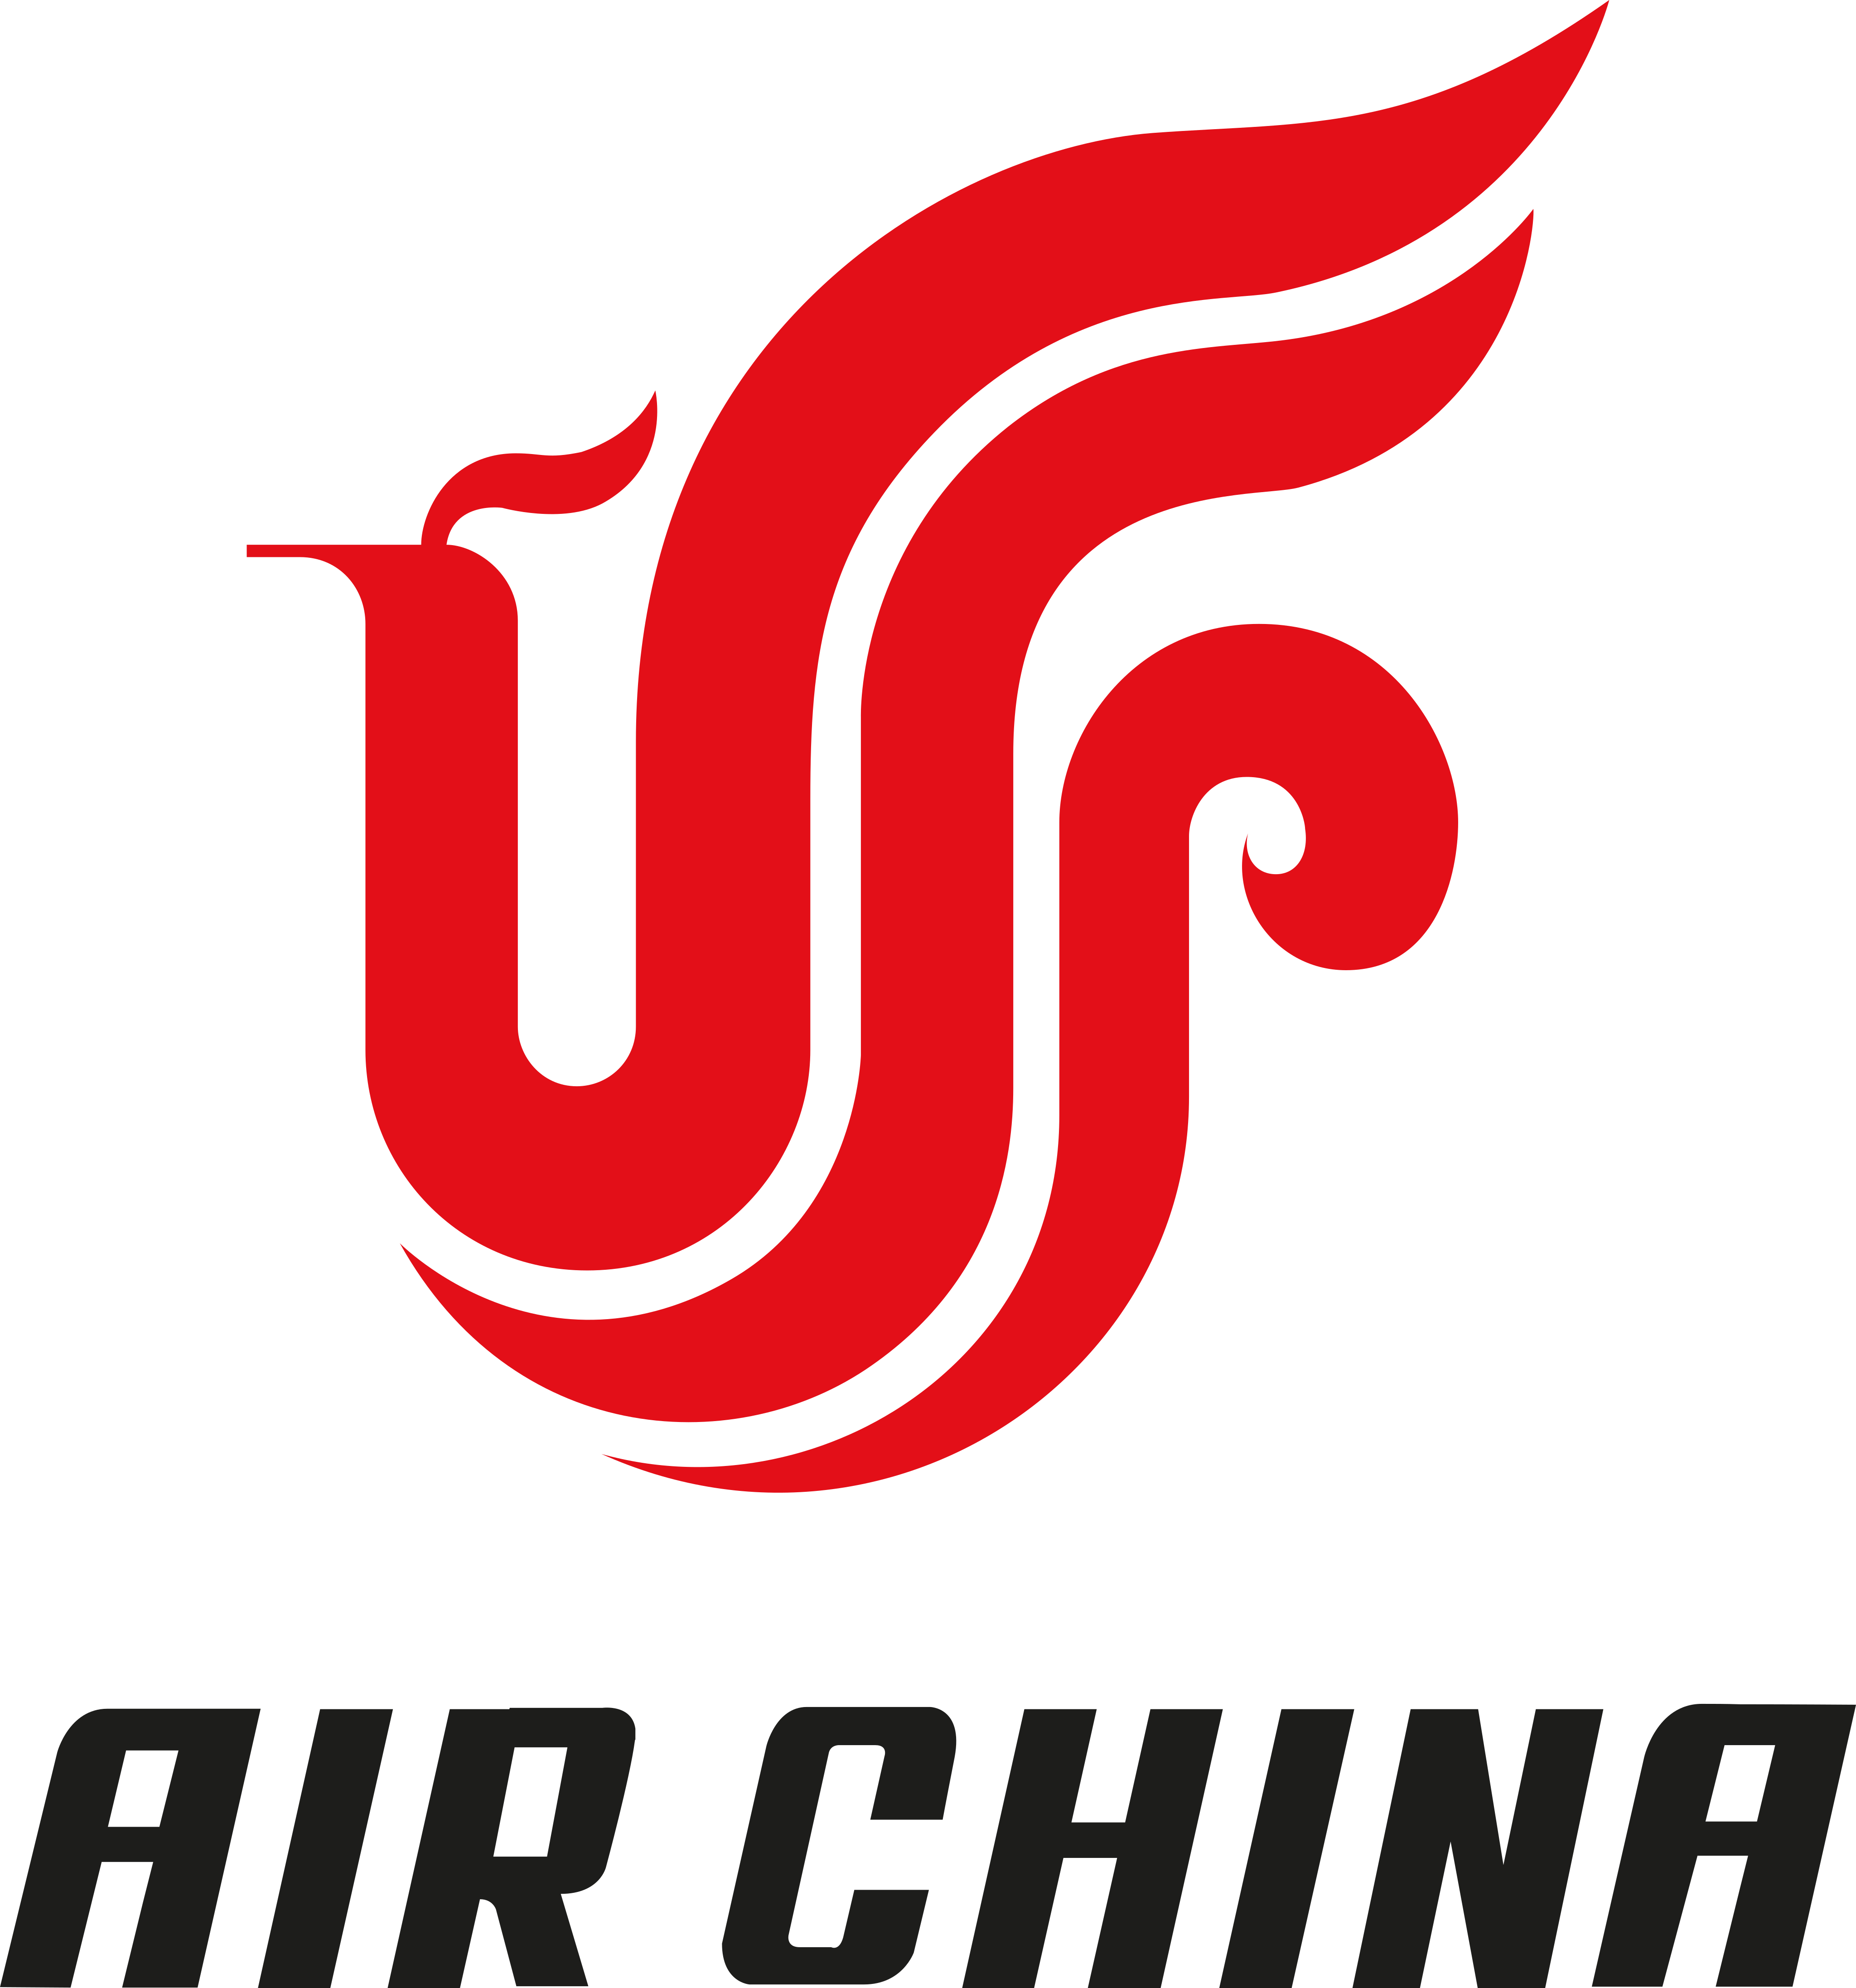 air china logo 3 - Air China Logo